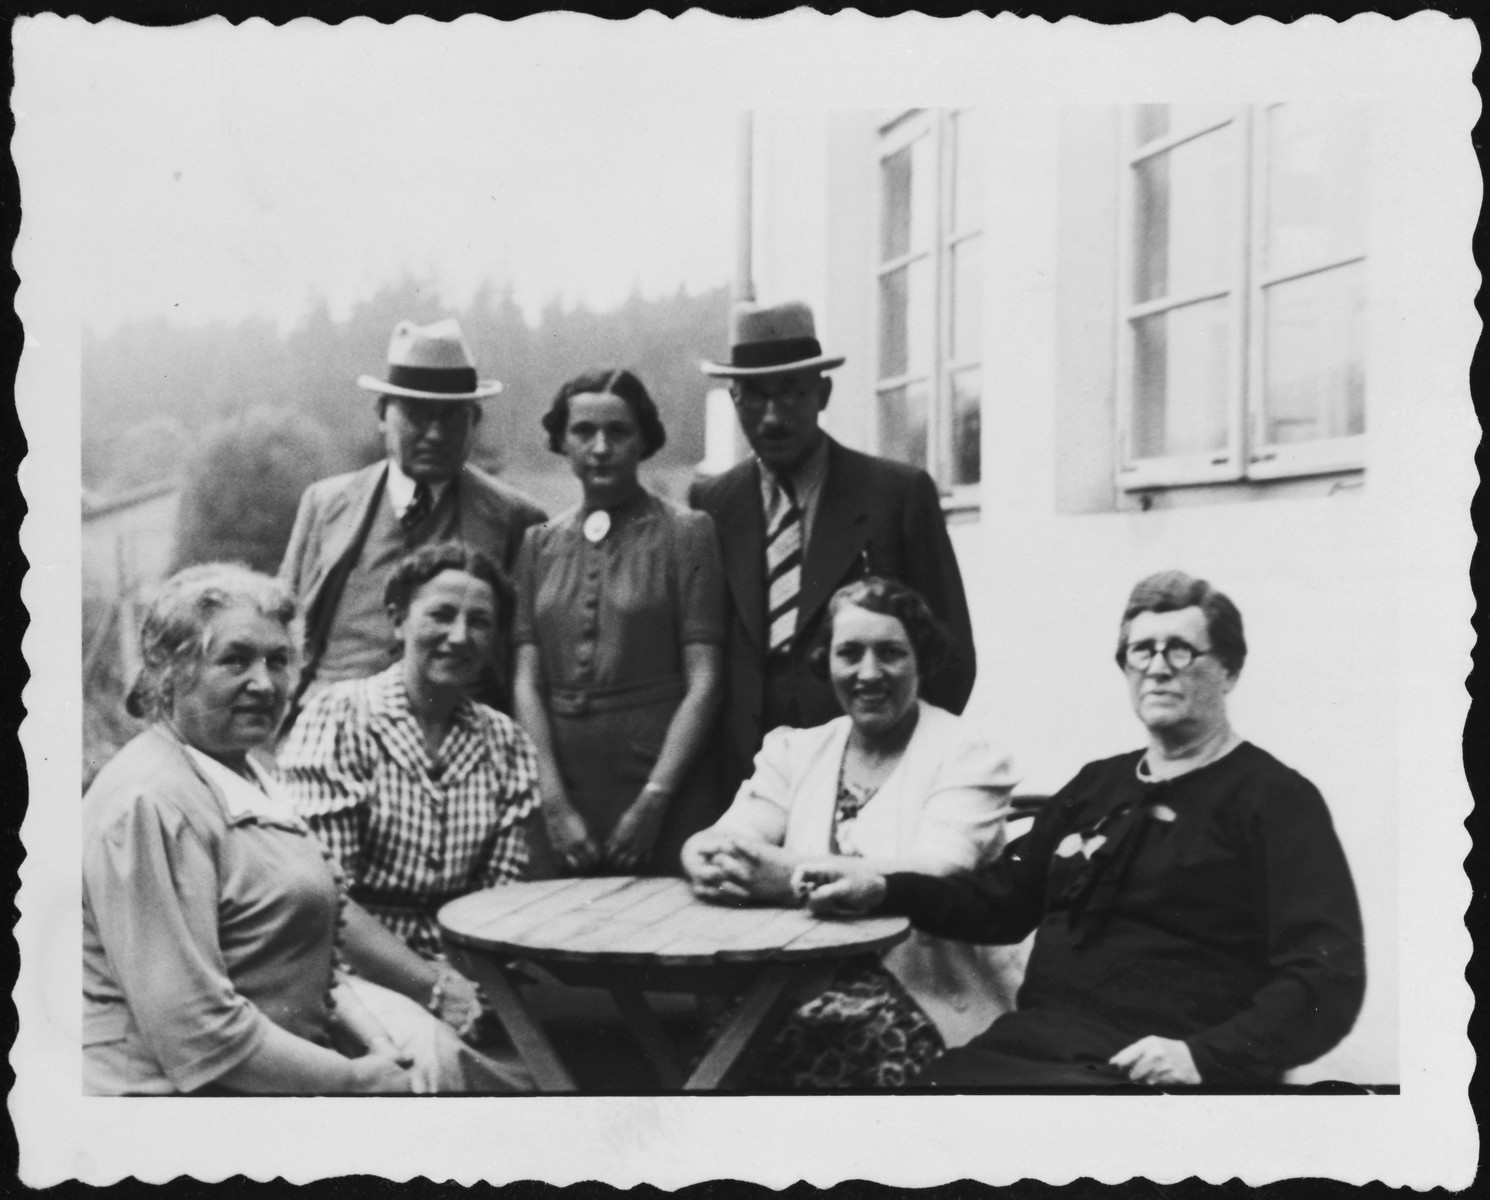 Family Vacation.  Pictured are family members of Rita Blumstein.